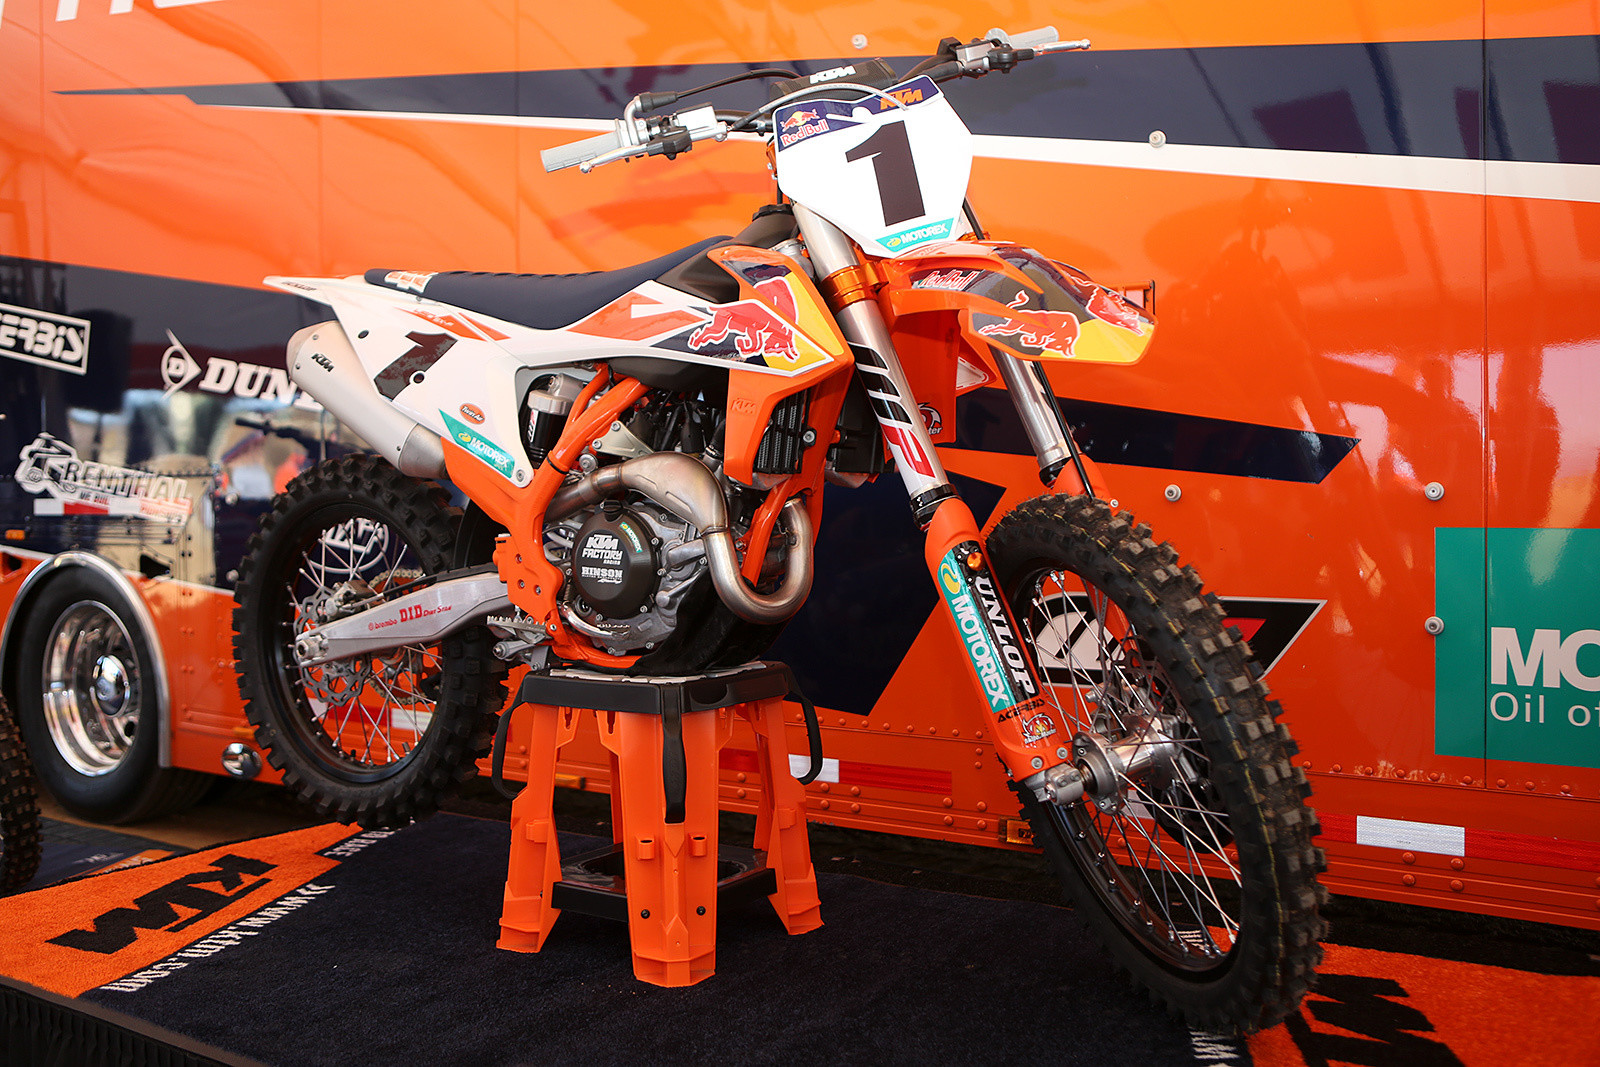 The new 2018 KTM 450 SX-F Factory Edition. Besides the obious differences in plastic and the exhaust, you can check out more on it here. <a href=&quot;http://www.vitalmx.com/features/First-Look-2018-KTM-450-SX-F-Factory-Edition,5676&quot; target=&quot;_blank&quot;>First Look: 2018 KTM 450 SX-F Factory Edition</a><br><a href=&quot;http://www.vitalmx.com/videos/features/Walk-Around-Tech-Brief-on-the-2018-KTM-450-SX-F-Factory-Edition,16340/ML512,13480&quot; target=&quot;_blank&quot;>Tech Brief on the 2018 KTM 450 SX-F Factory Edition</a>